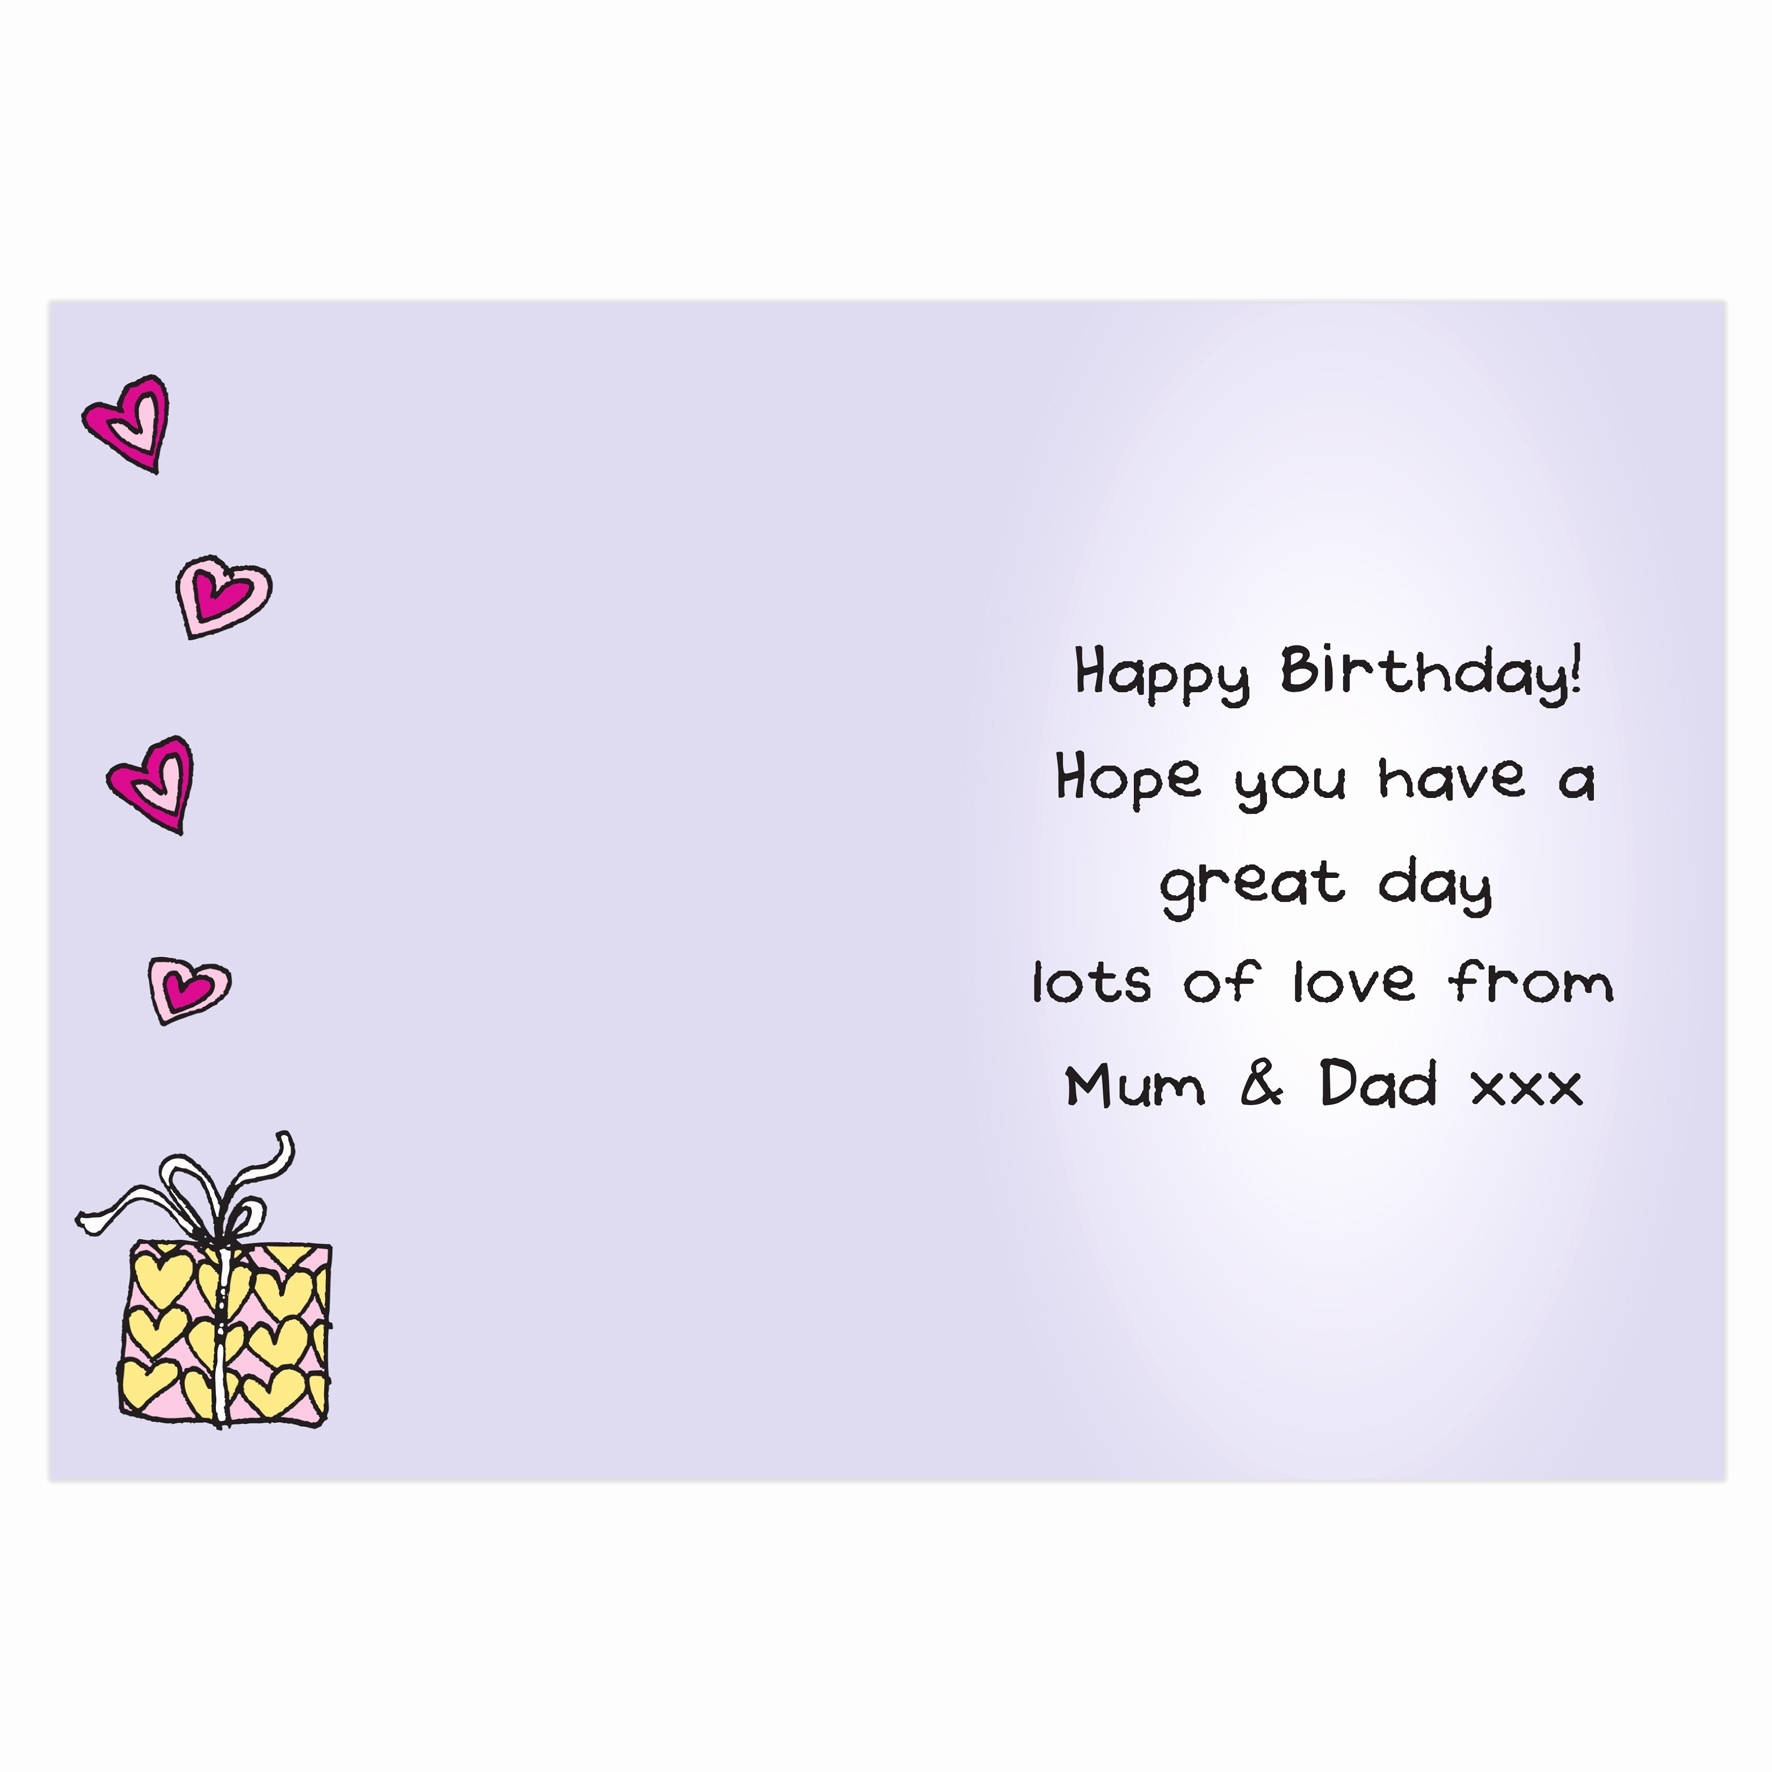 best birthday card messages for mom ; mom-birthday-card-messages-beautiful-birthday-card-sayings-girlfriend-birthday-snydle-birthday-wishes-of-mom-birthday-card-messages